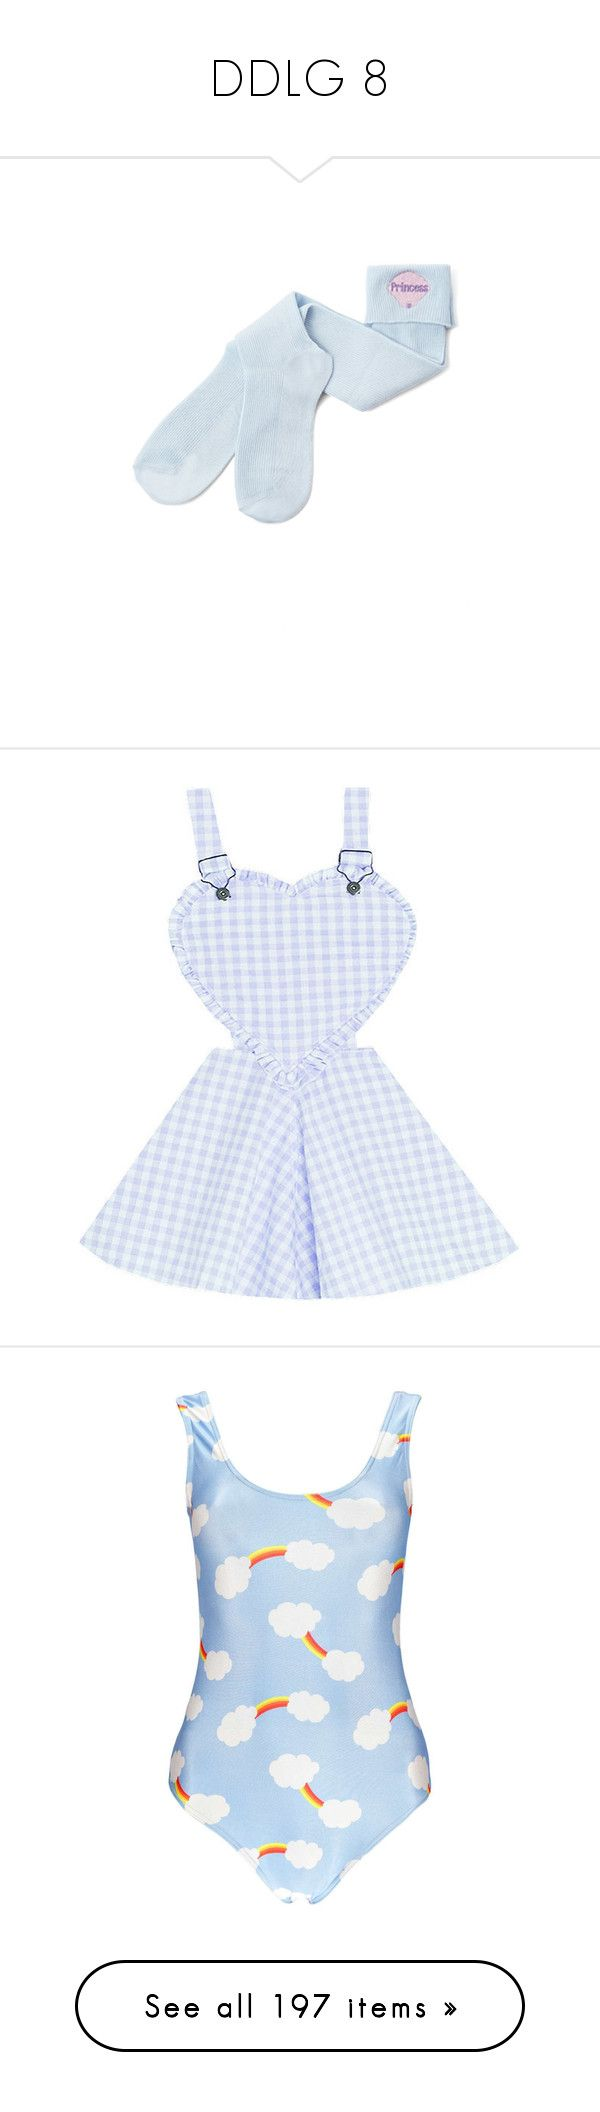 """DDLG 8"" by unicorn-923 ❤ liked on Polyvore featuring intimates, hosiery, socks, clothing - socks, bubble socks, dresses, skirts, overalls, blue and swimwear"